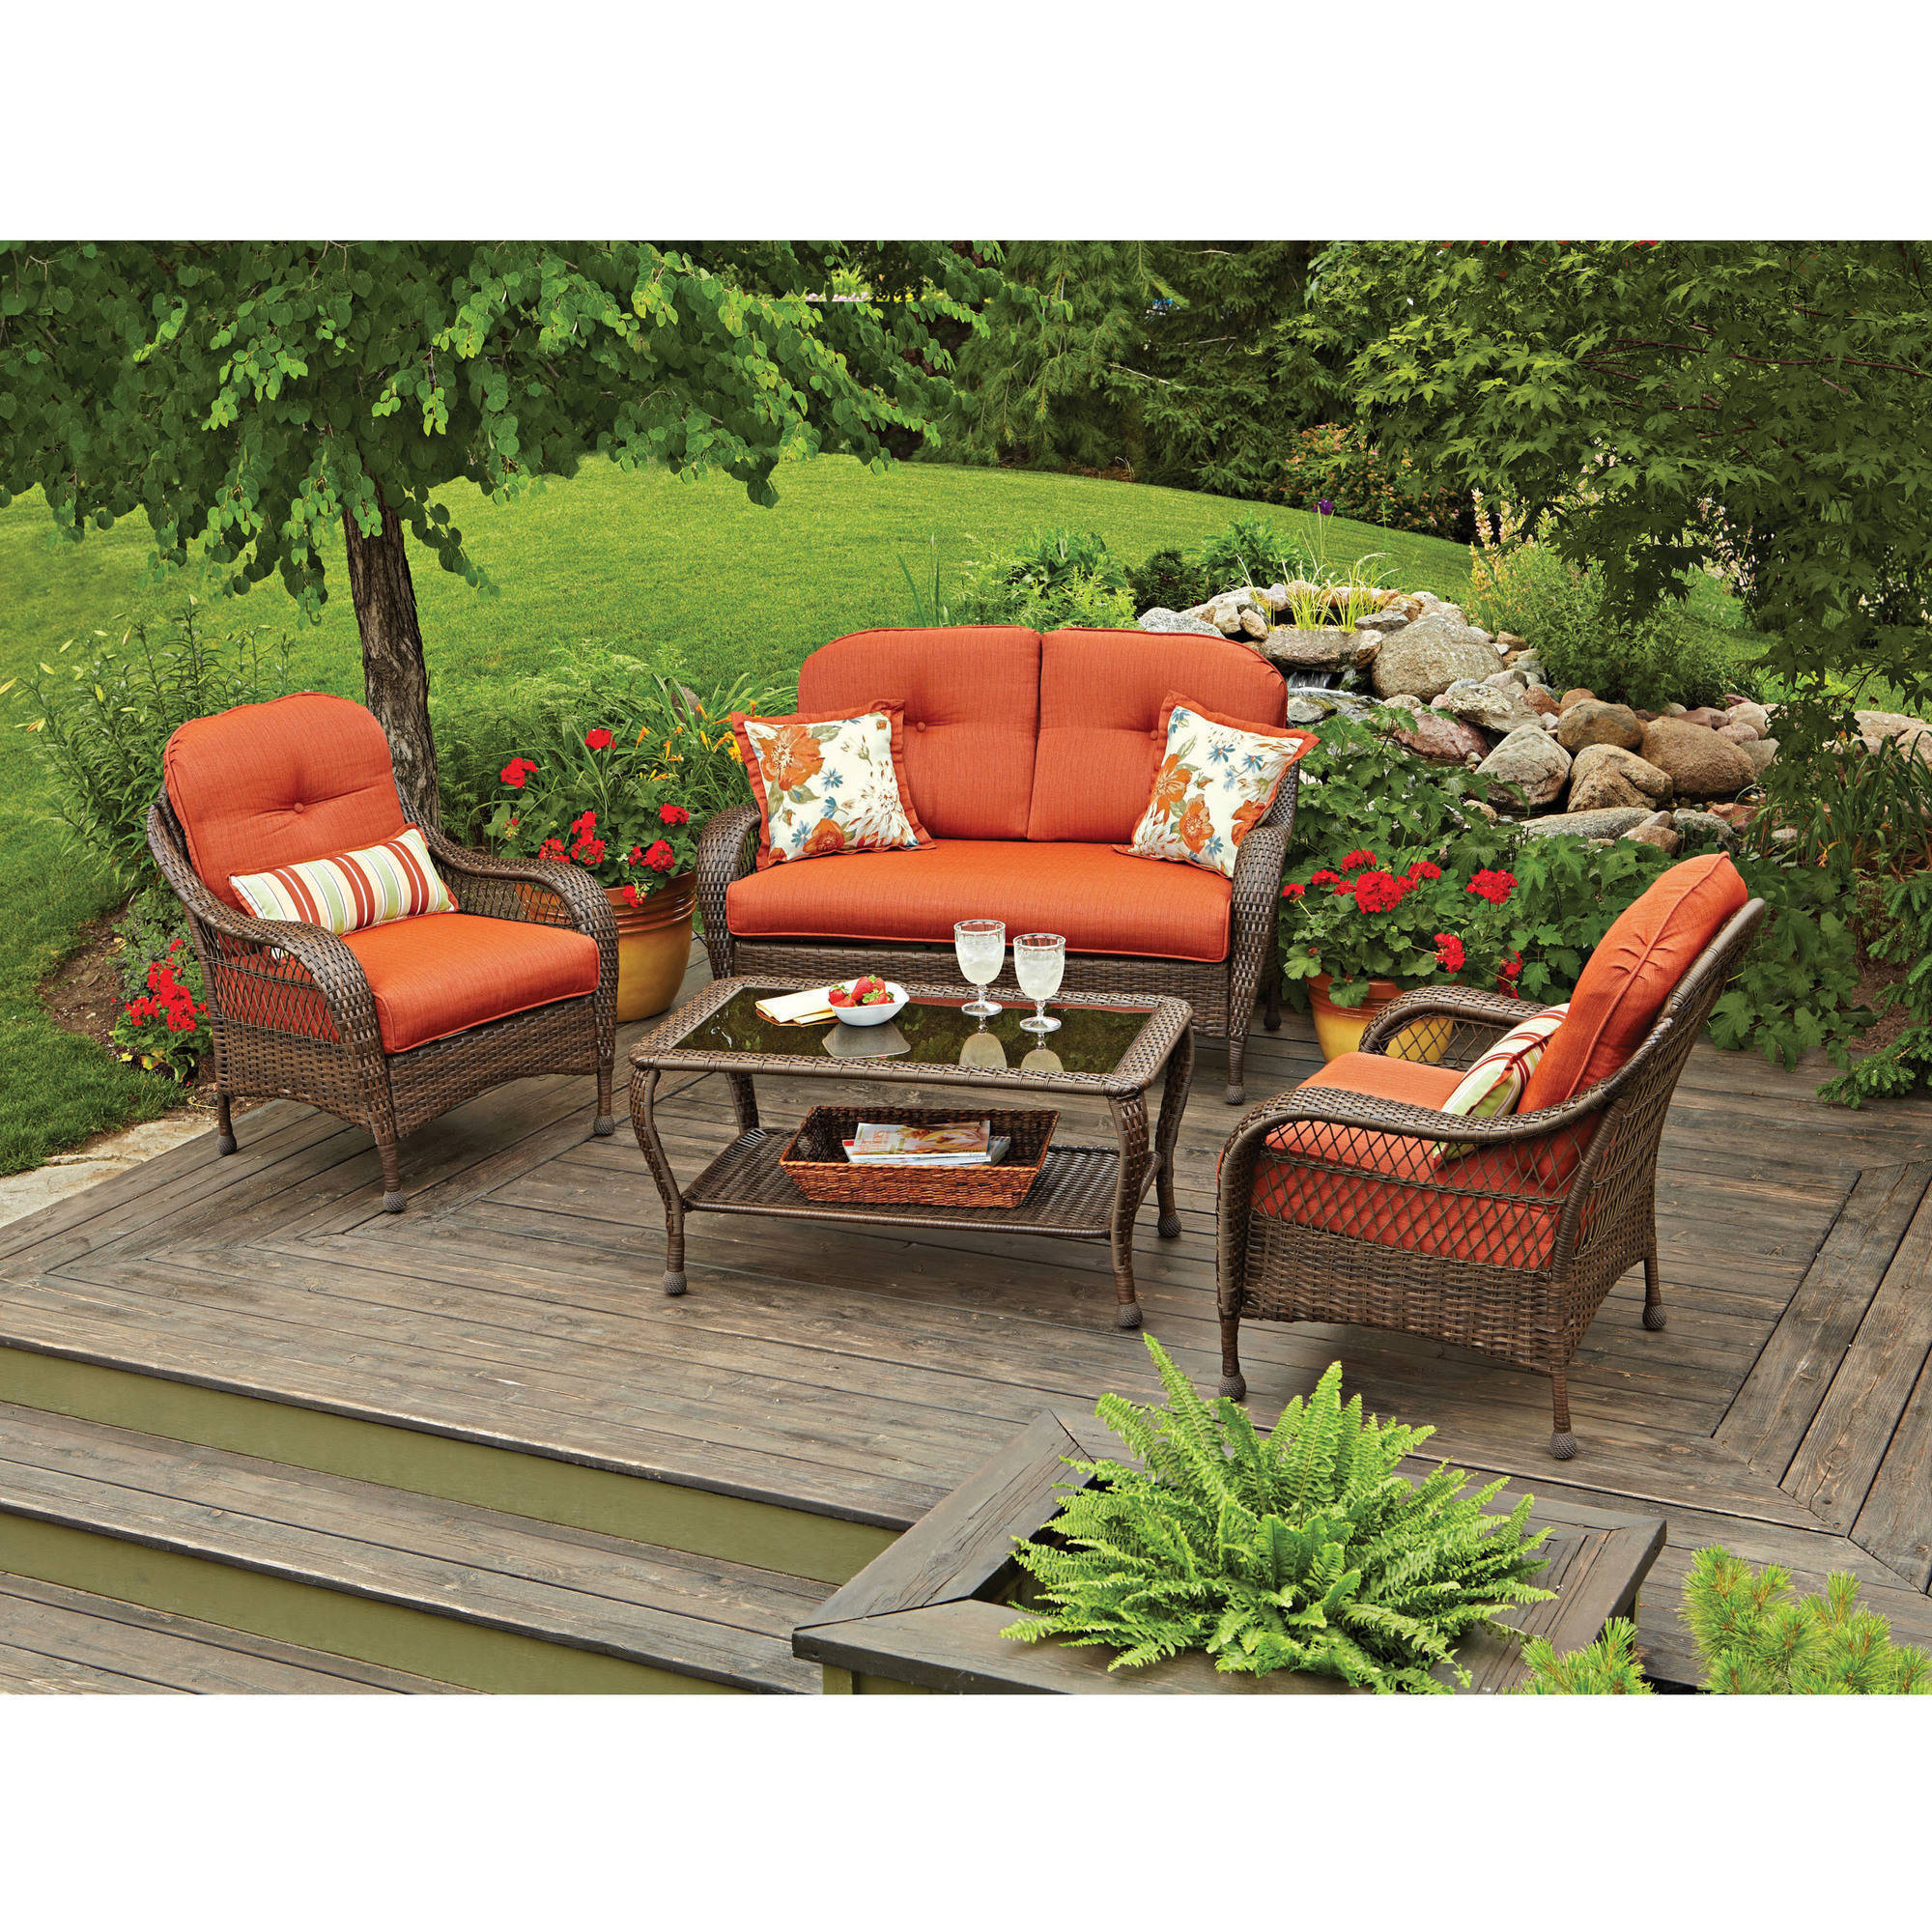 seat sectional backyard sofa outsunny outdoor furniture wicker living r ca set cushioned patio